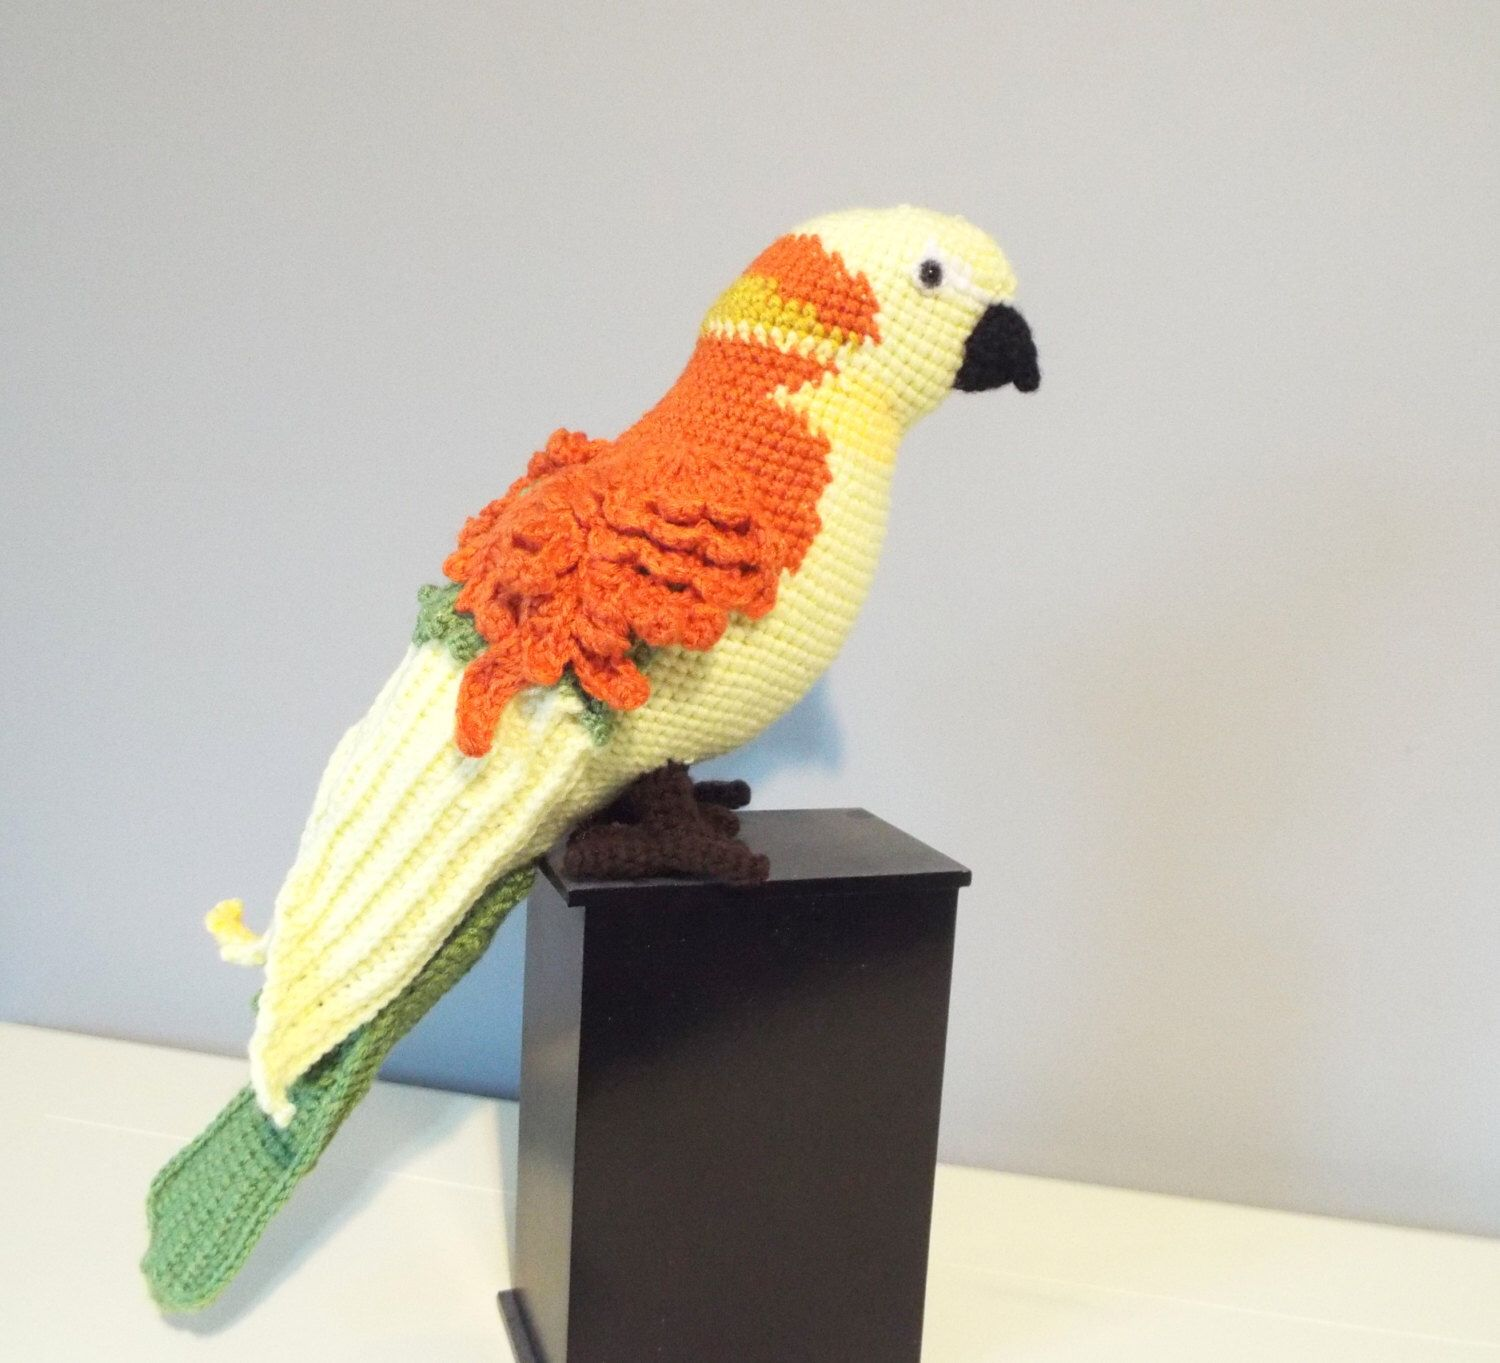 Pin By Sara Barbour On Iuventus Crochet Crochet Parrot Crochet